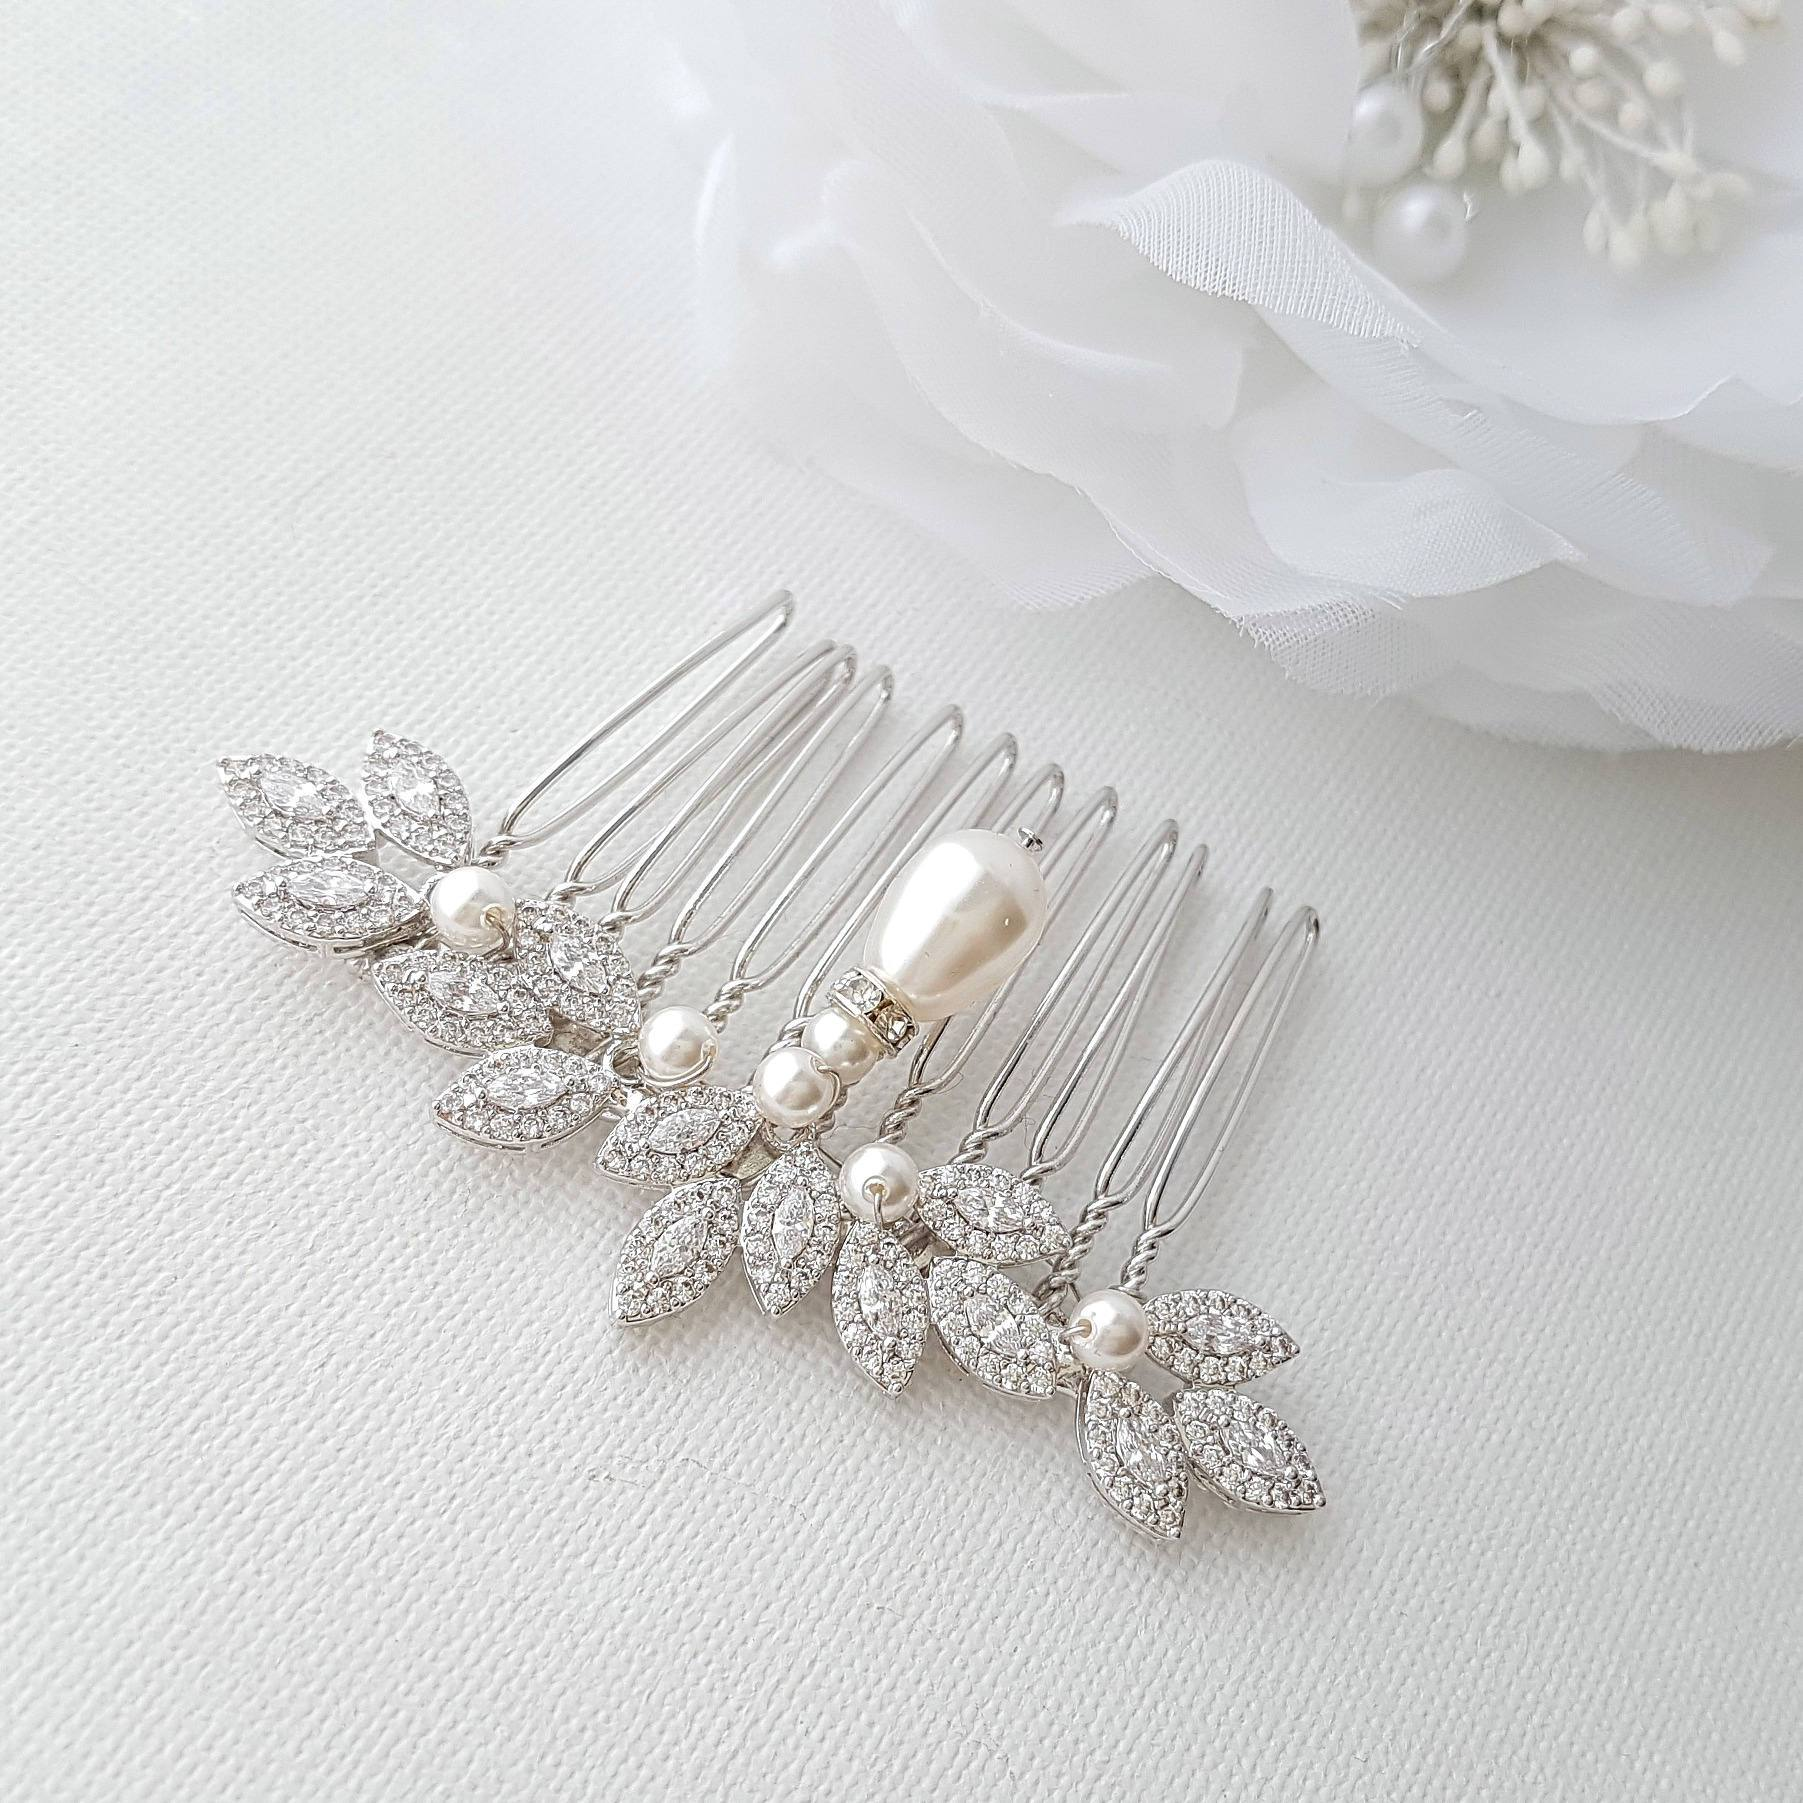 Crystal Hair Comb, Pearl Wedding Hair Comb, Leaf Haircomb, Zirconia Hair Comb, Swarovski Pearls, Bridal Hairpiece, Hair Accessories, Abby